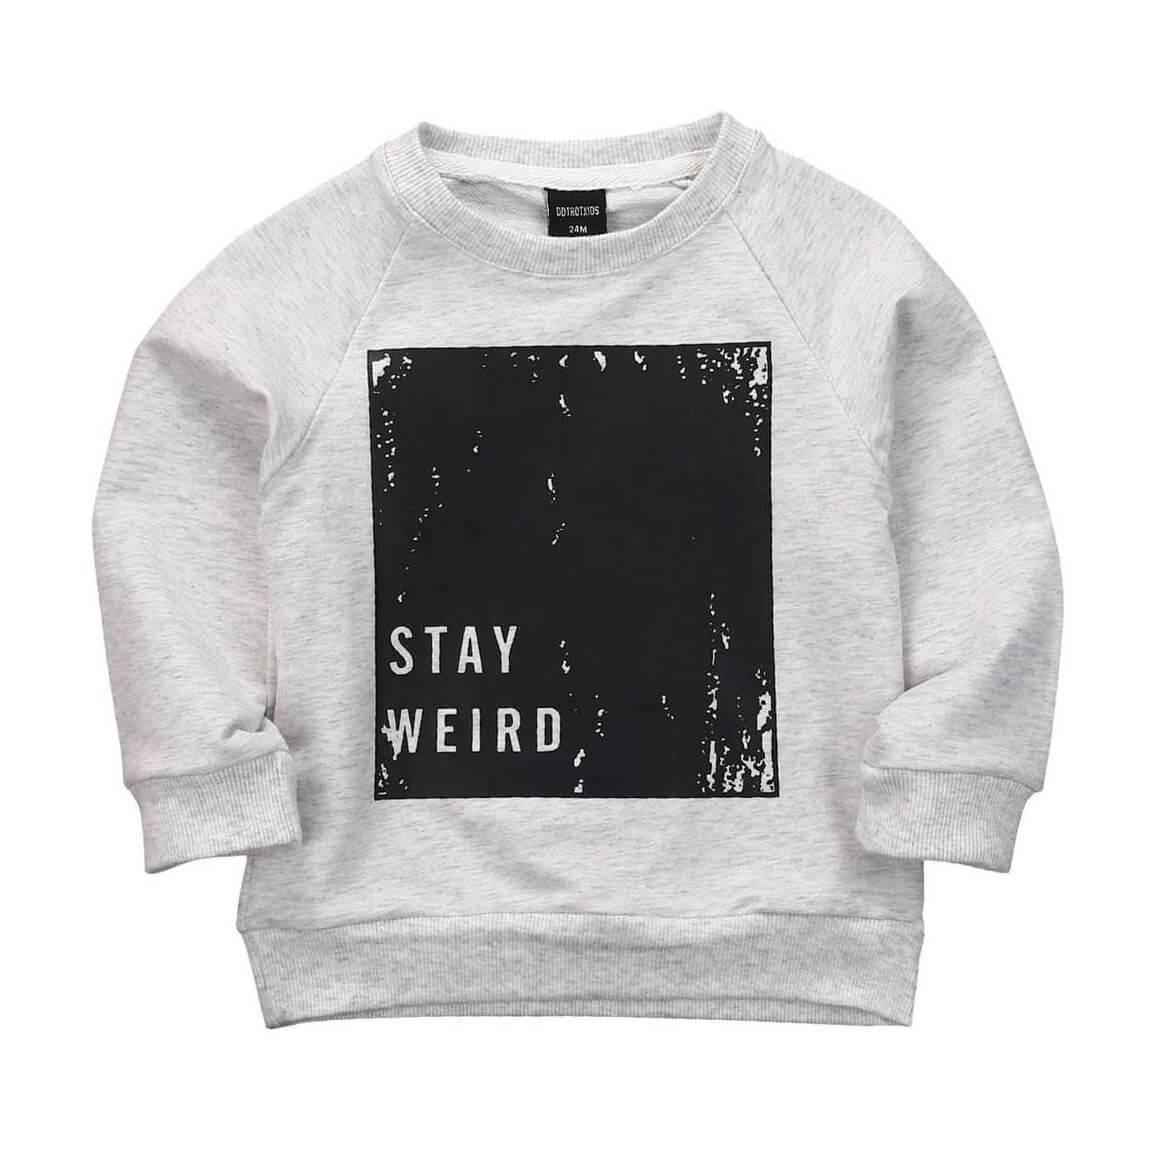 Stay Weird Sweatshirt - The Trendy Toddlers